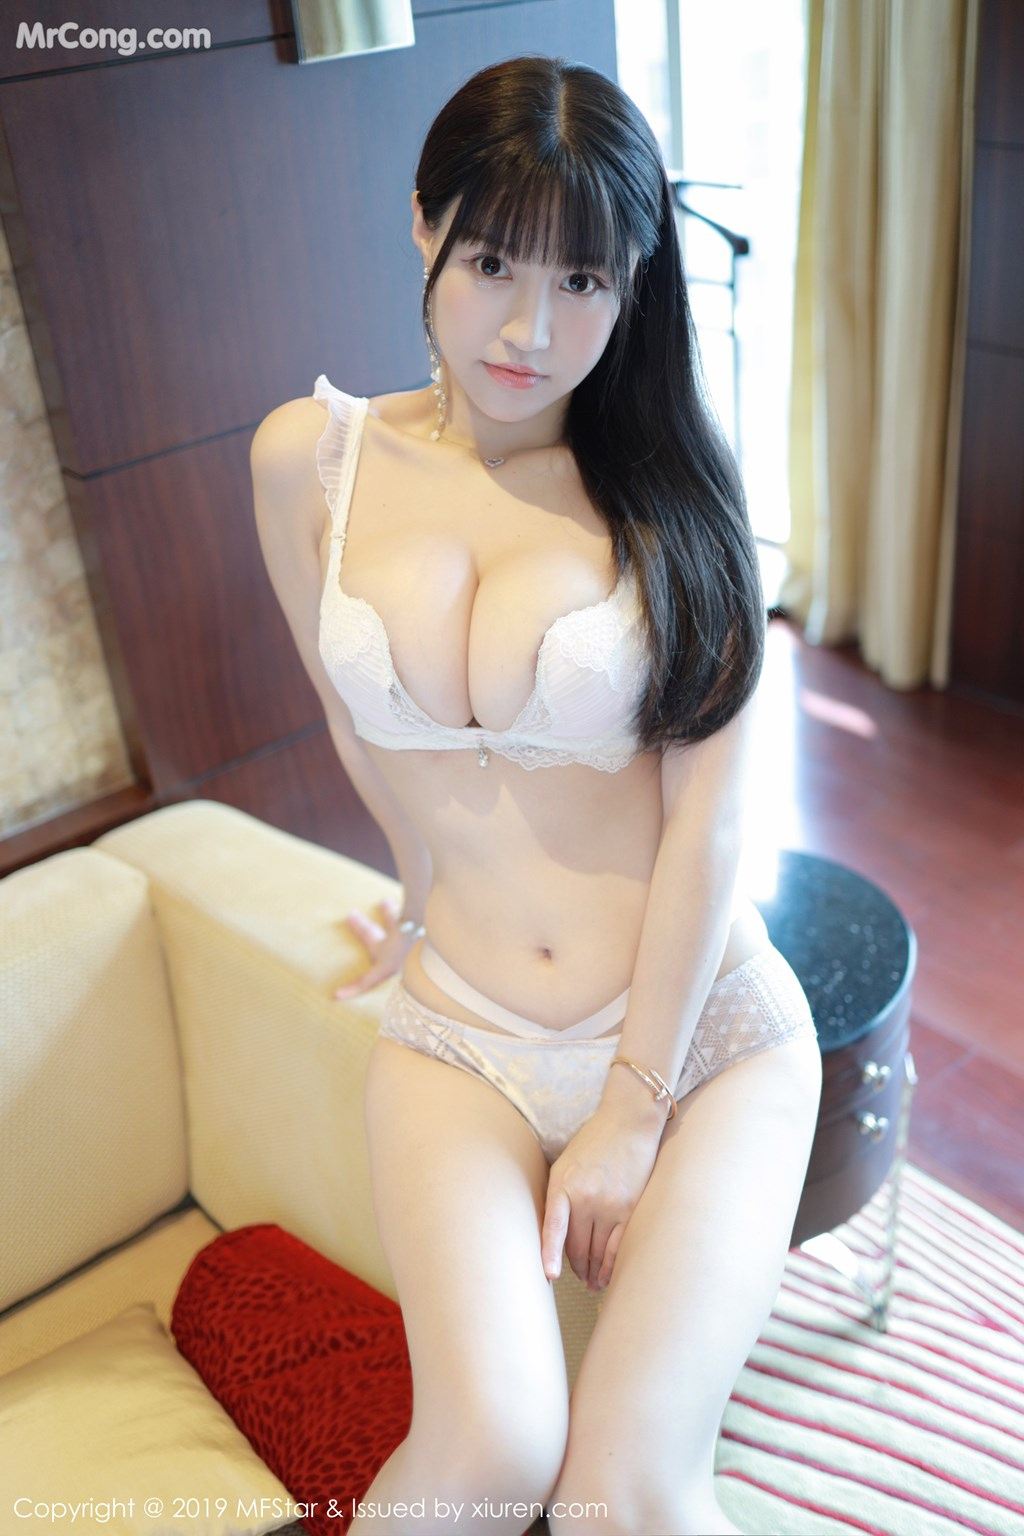 MFStar Vol.217: Zhu Ke Er (Flower朱可儿) (91P)